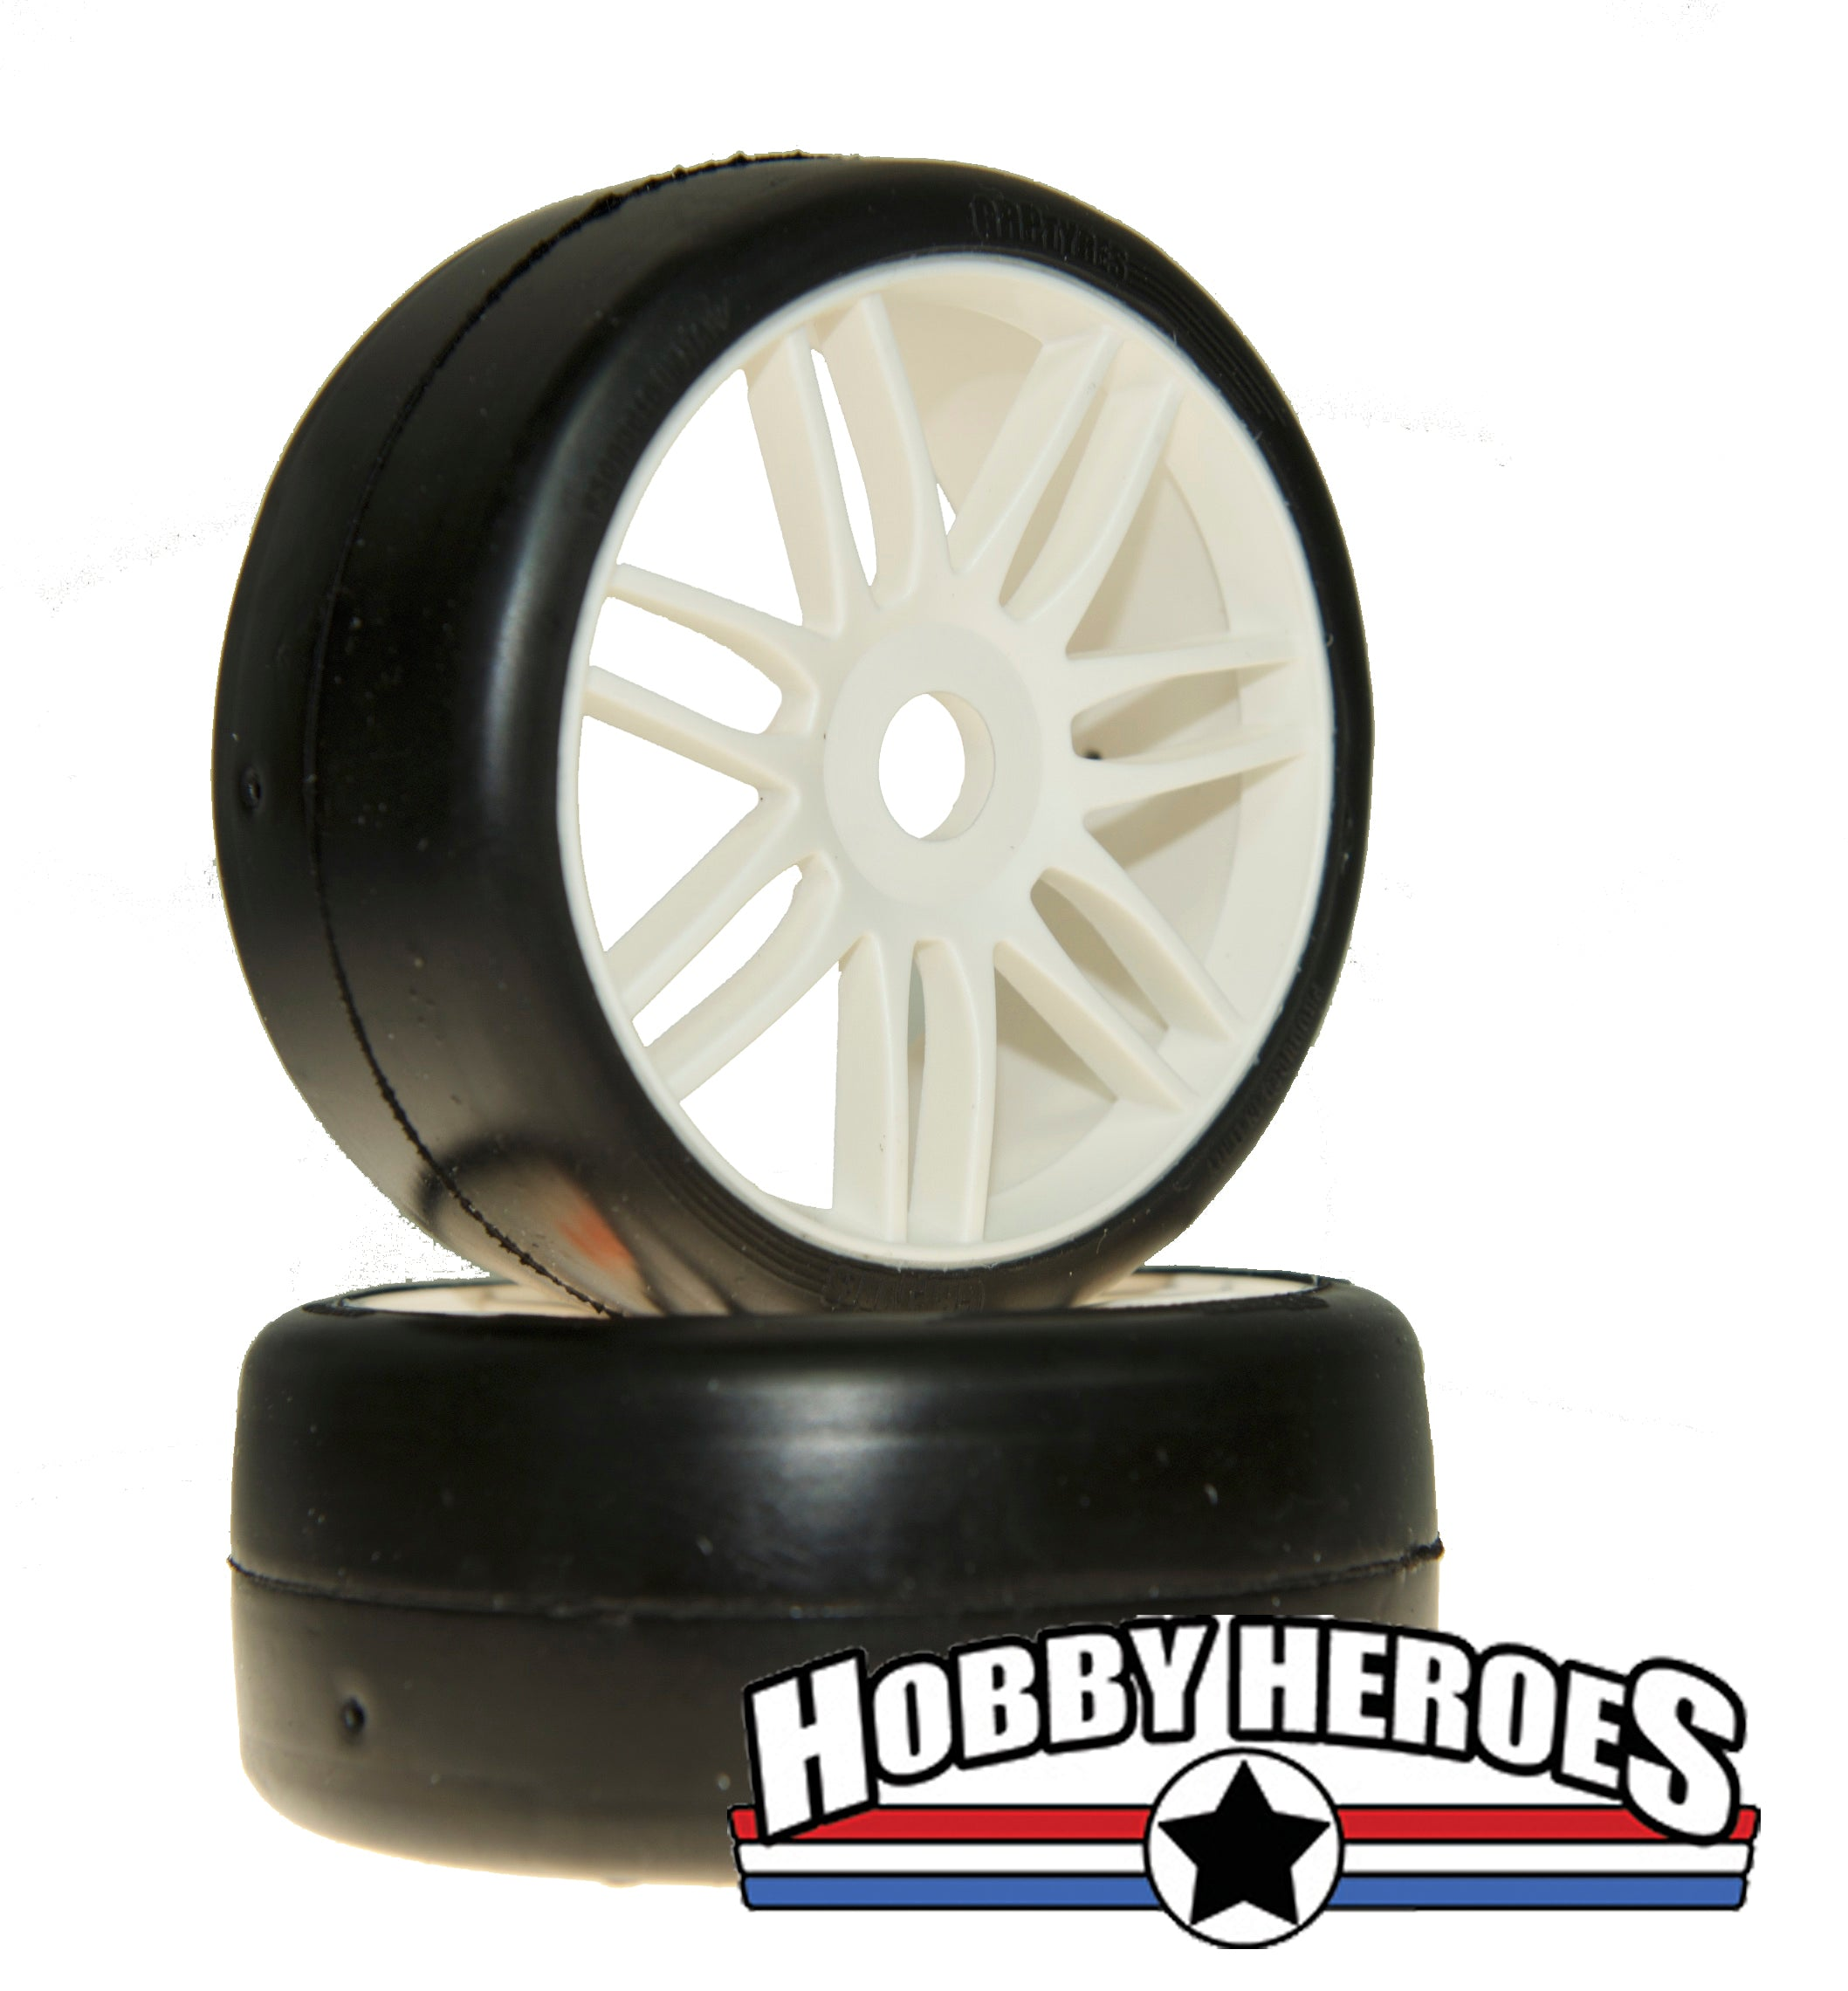 GRP Tyres 1:8 GT Slick S3 Soft White Spoked Belted On-Road Rubber Tires GRPGTH02-S3